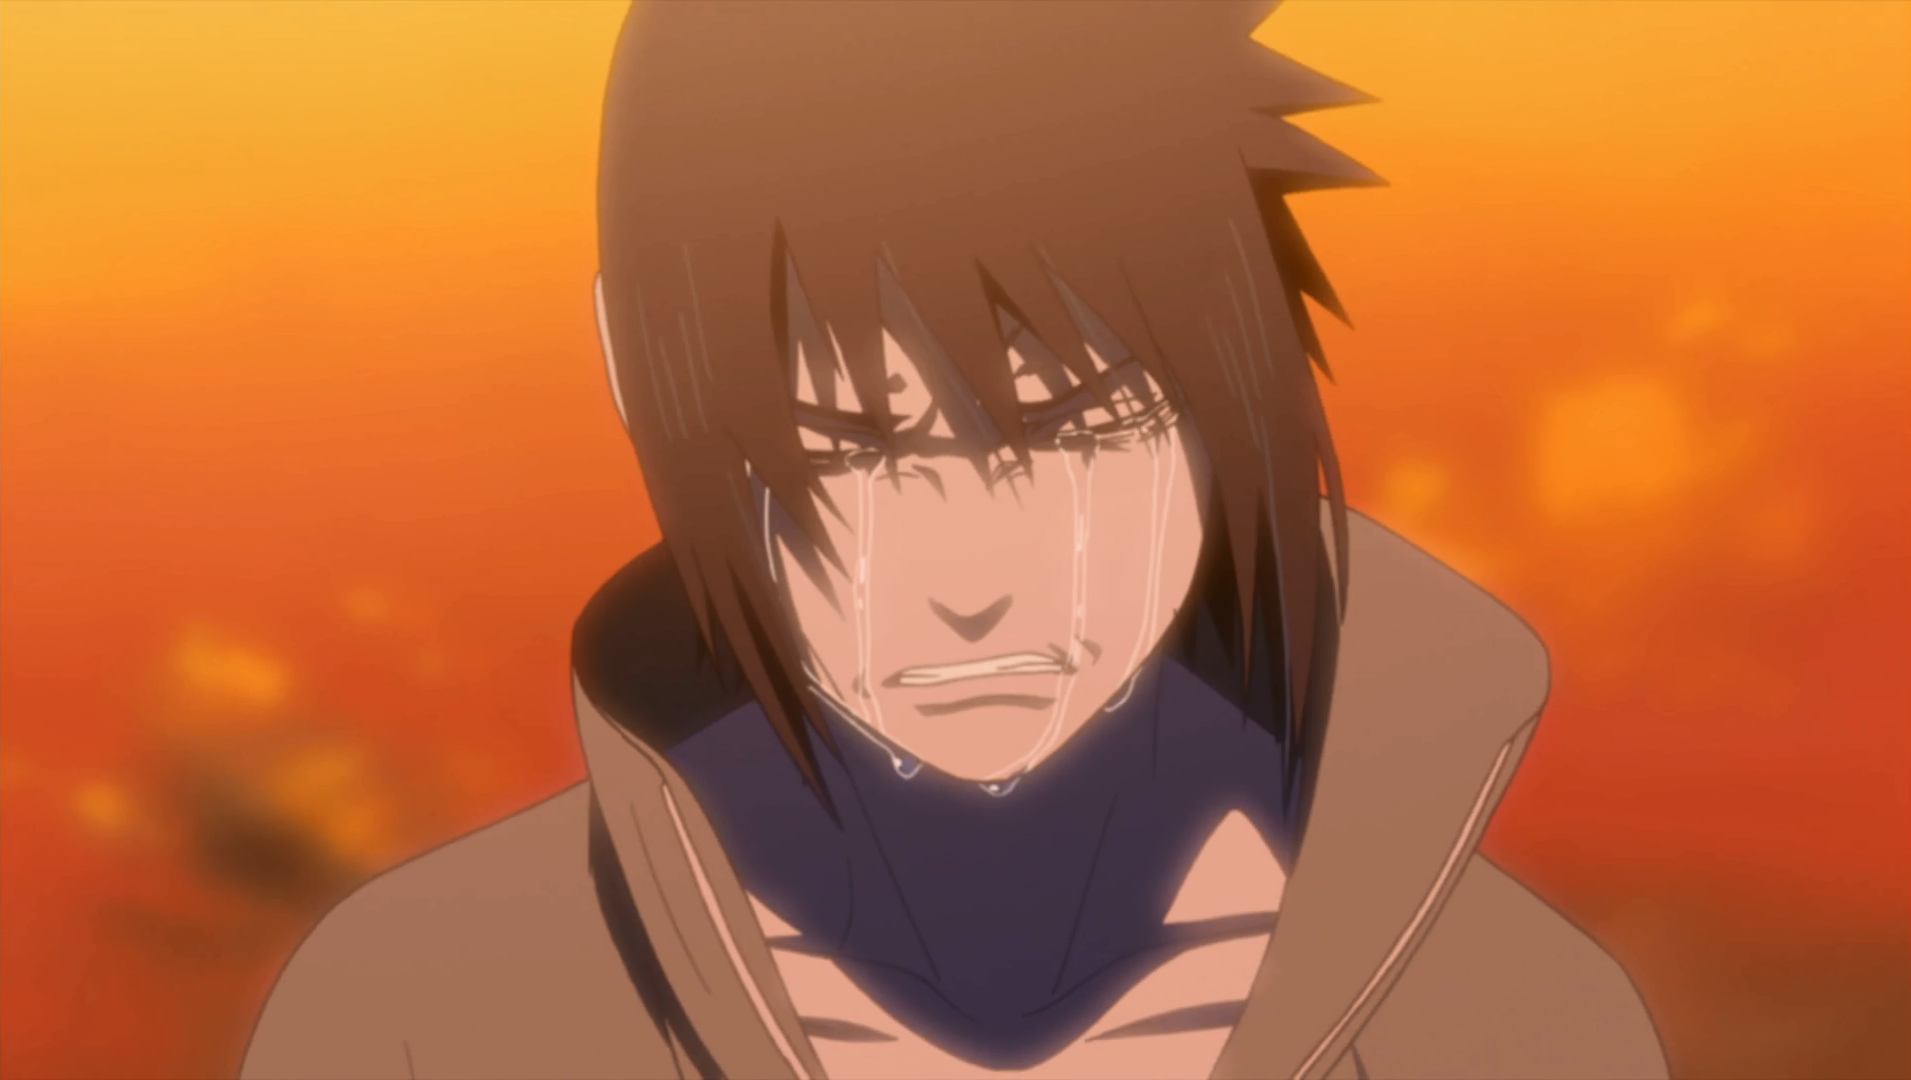 http://img2.wikia.nocookie.net/__cb20130919143314/naruto/images/8/8a/Sasuke_cry.png